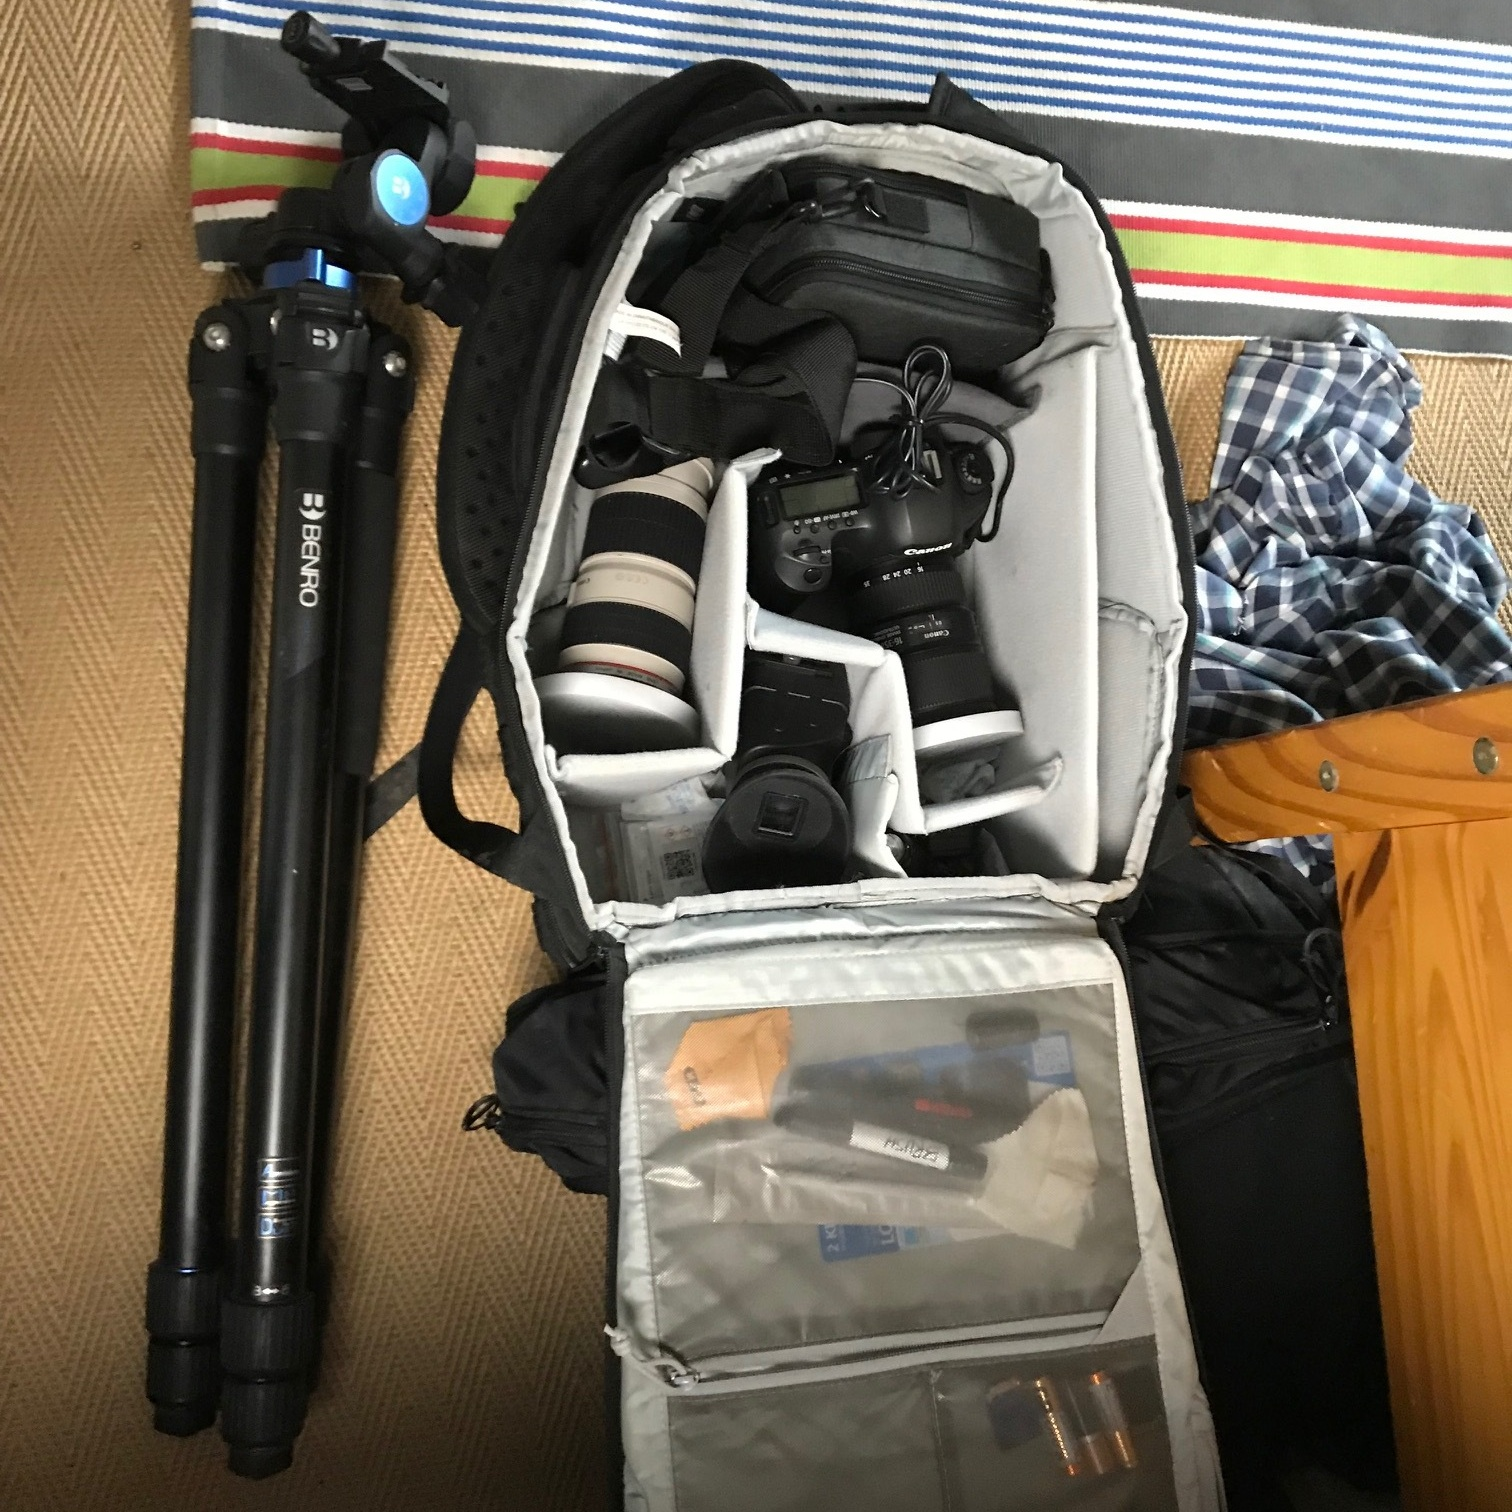 A messy bag after a day out with the camera!